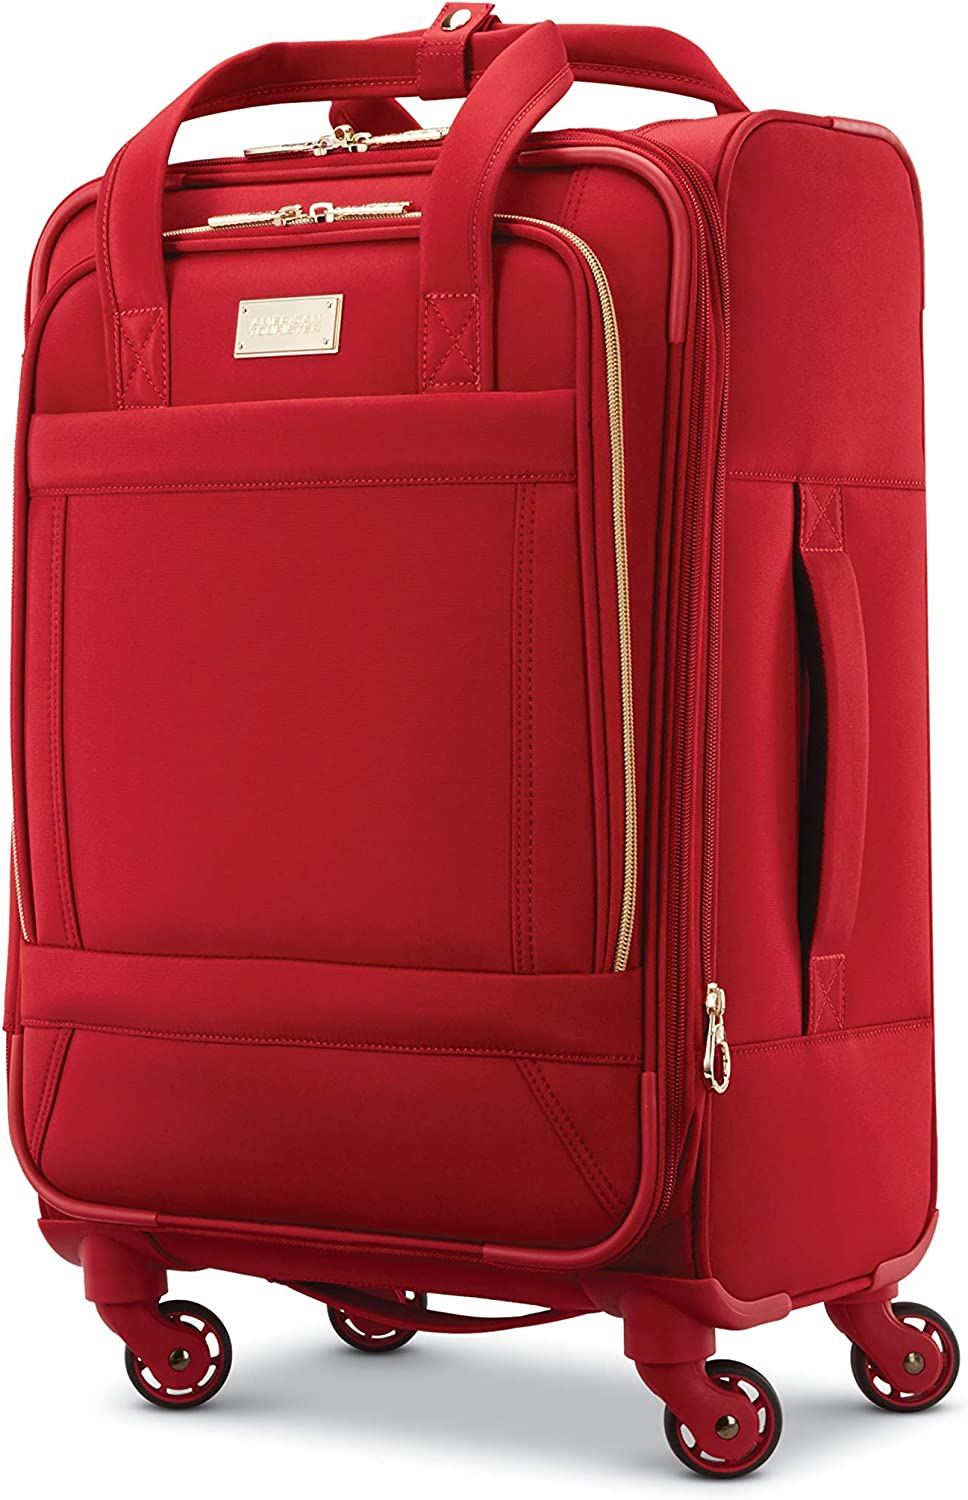 Black Checked-Large 28-Inch American Tourister Belle Voyage Hardside Luggage with Spinner Wheels